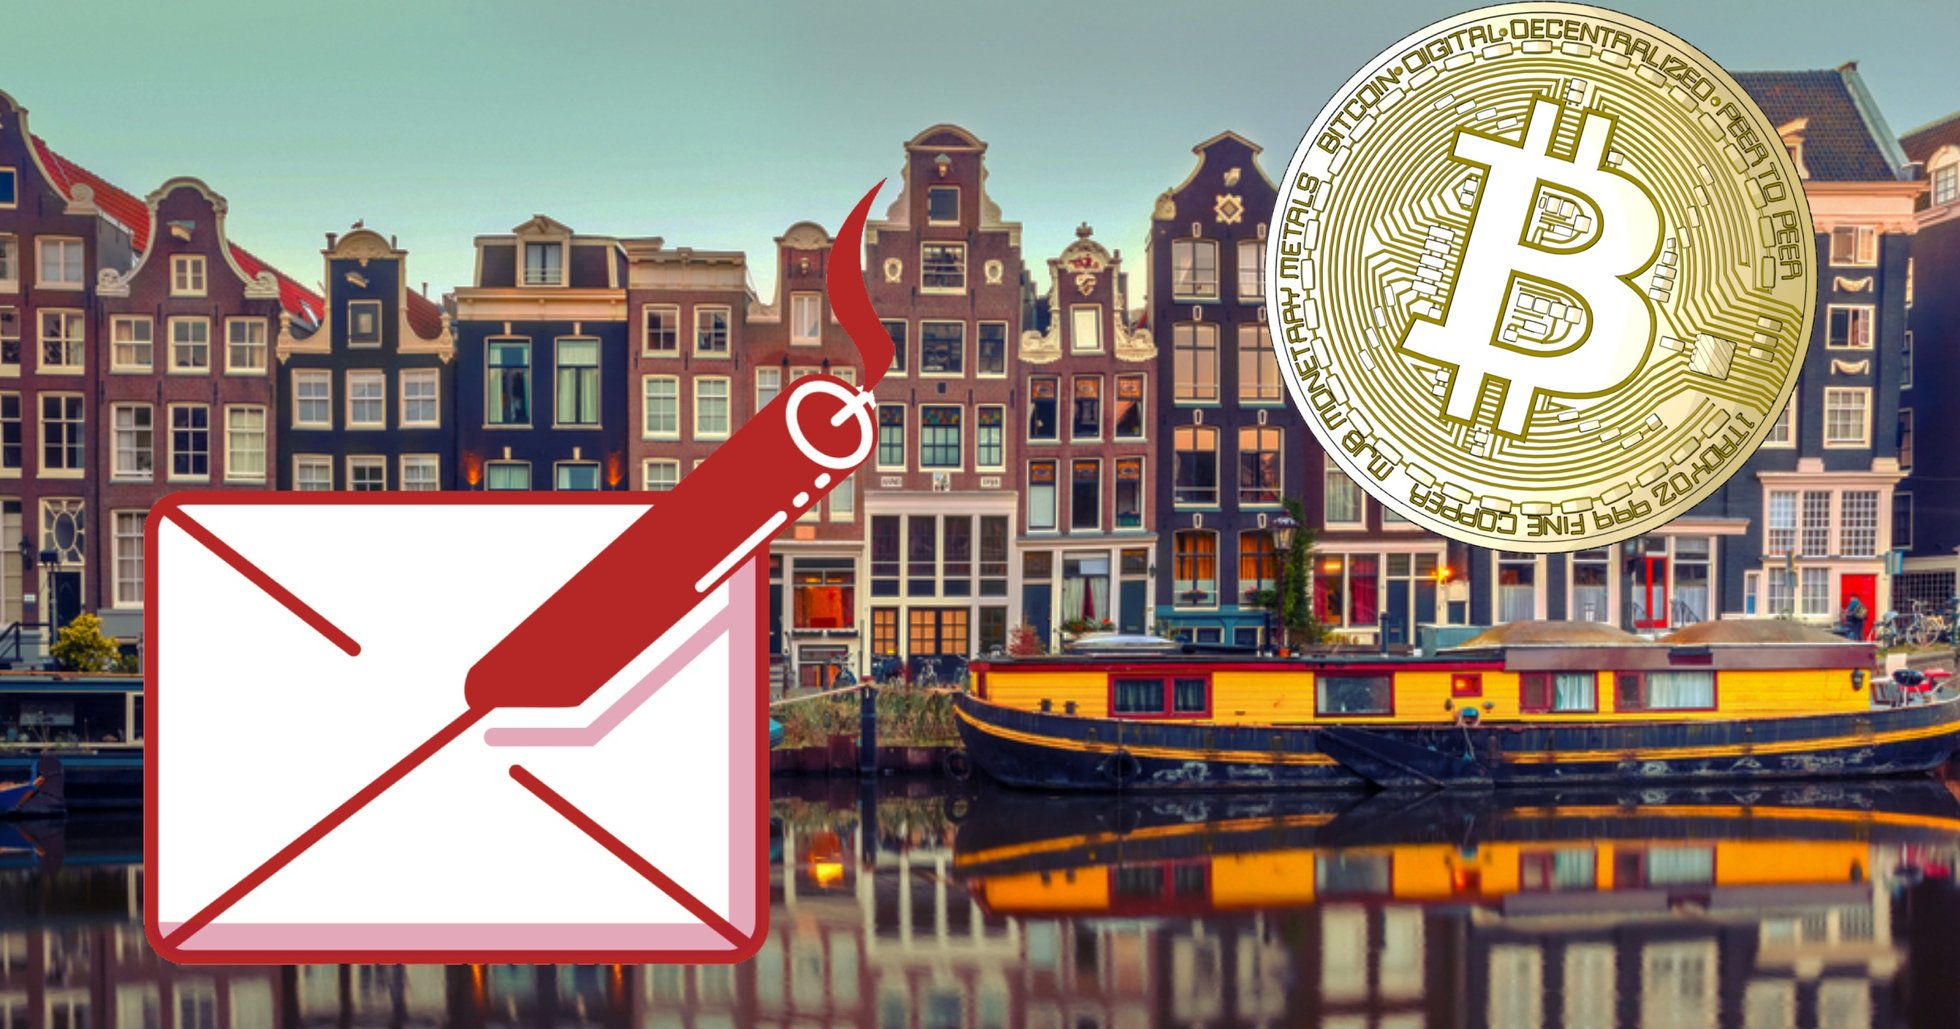 Letterbomber in the Netherlands demands ransom in bitcoin